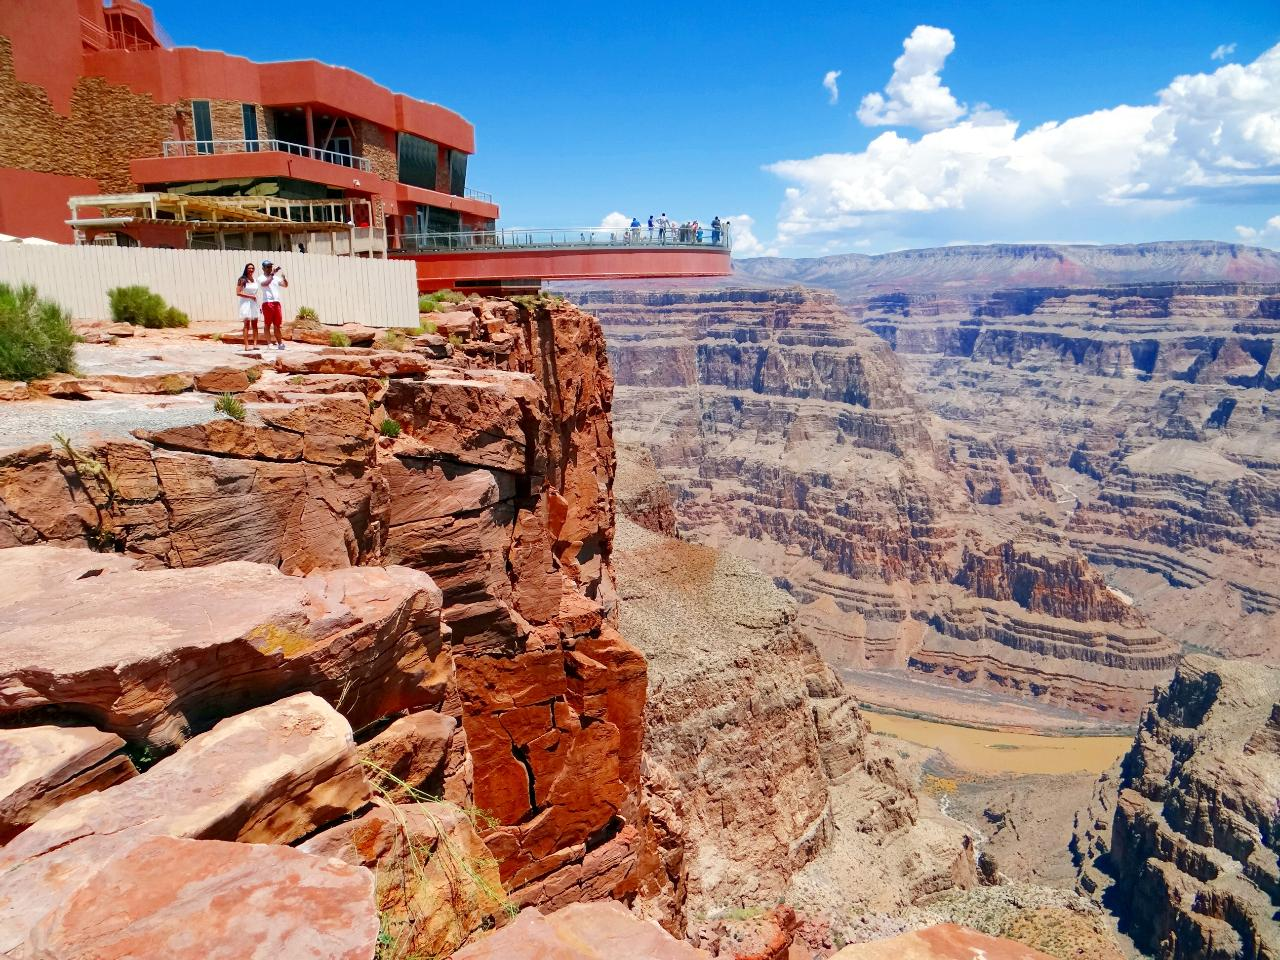 GC - West Rim Bus + Helicopter & Boat Ride (Use)